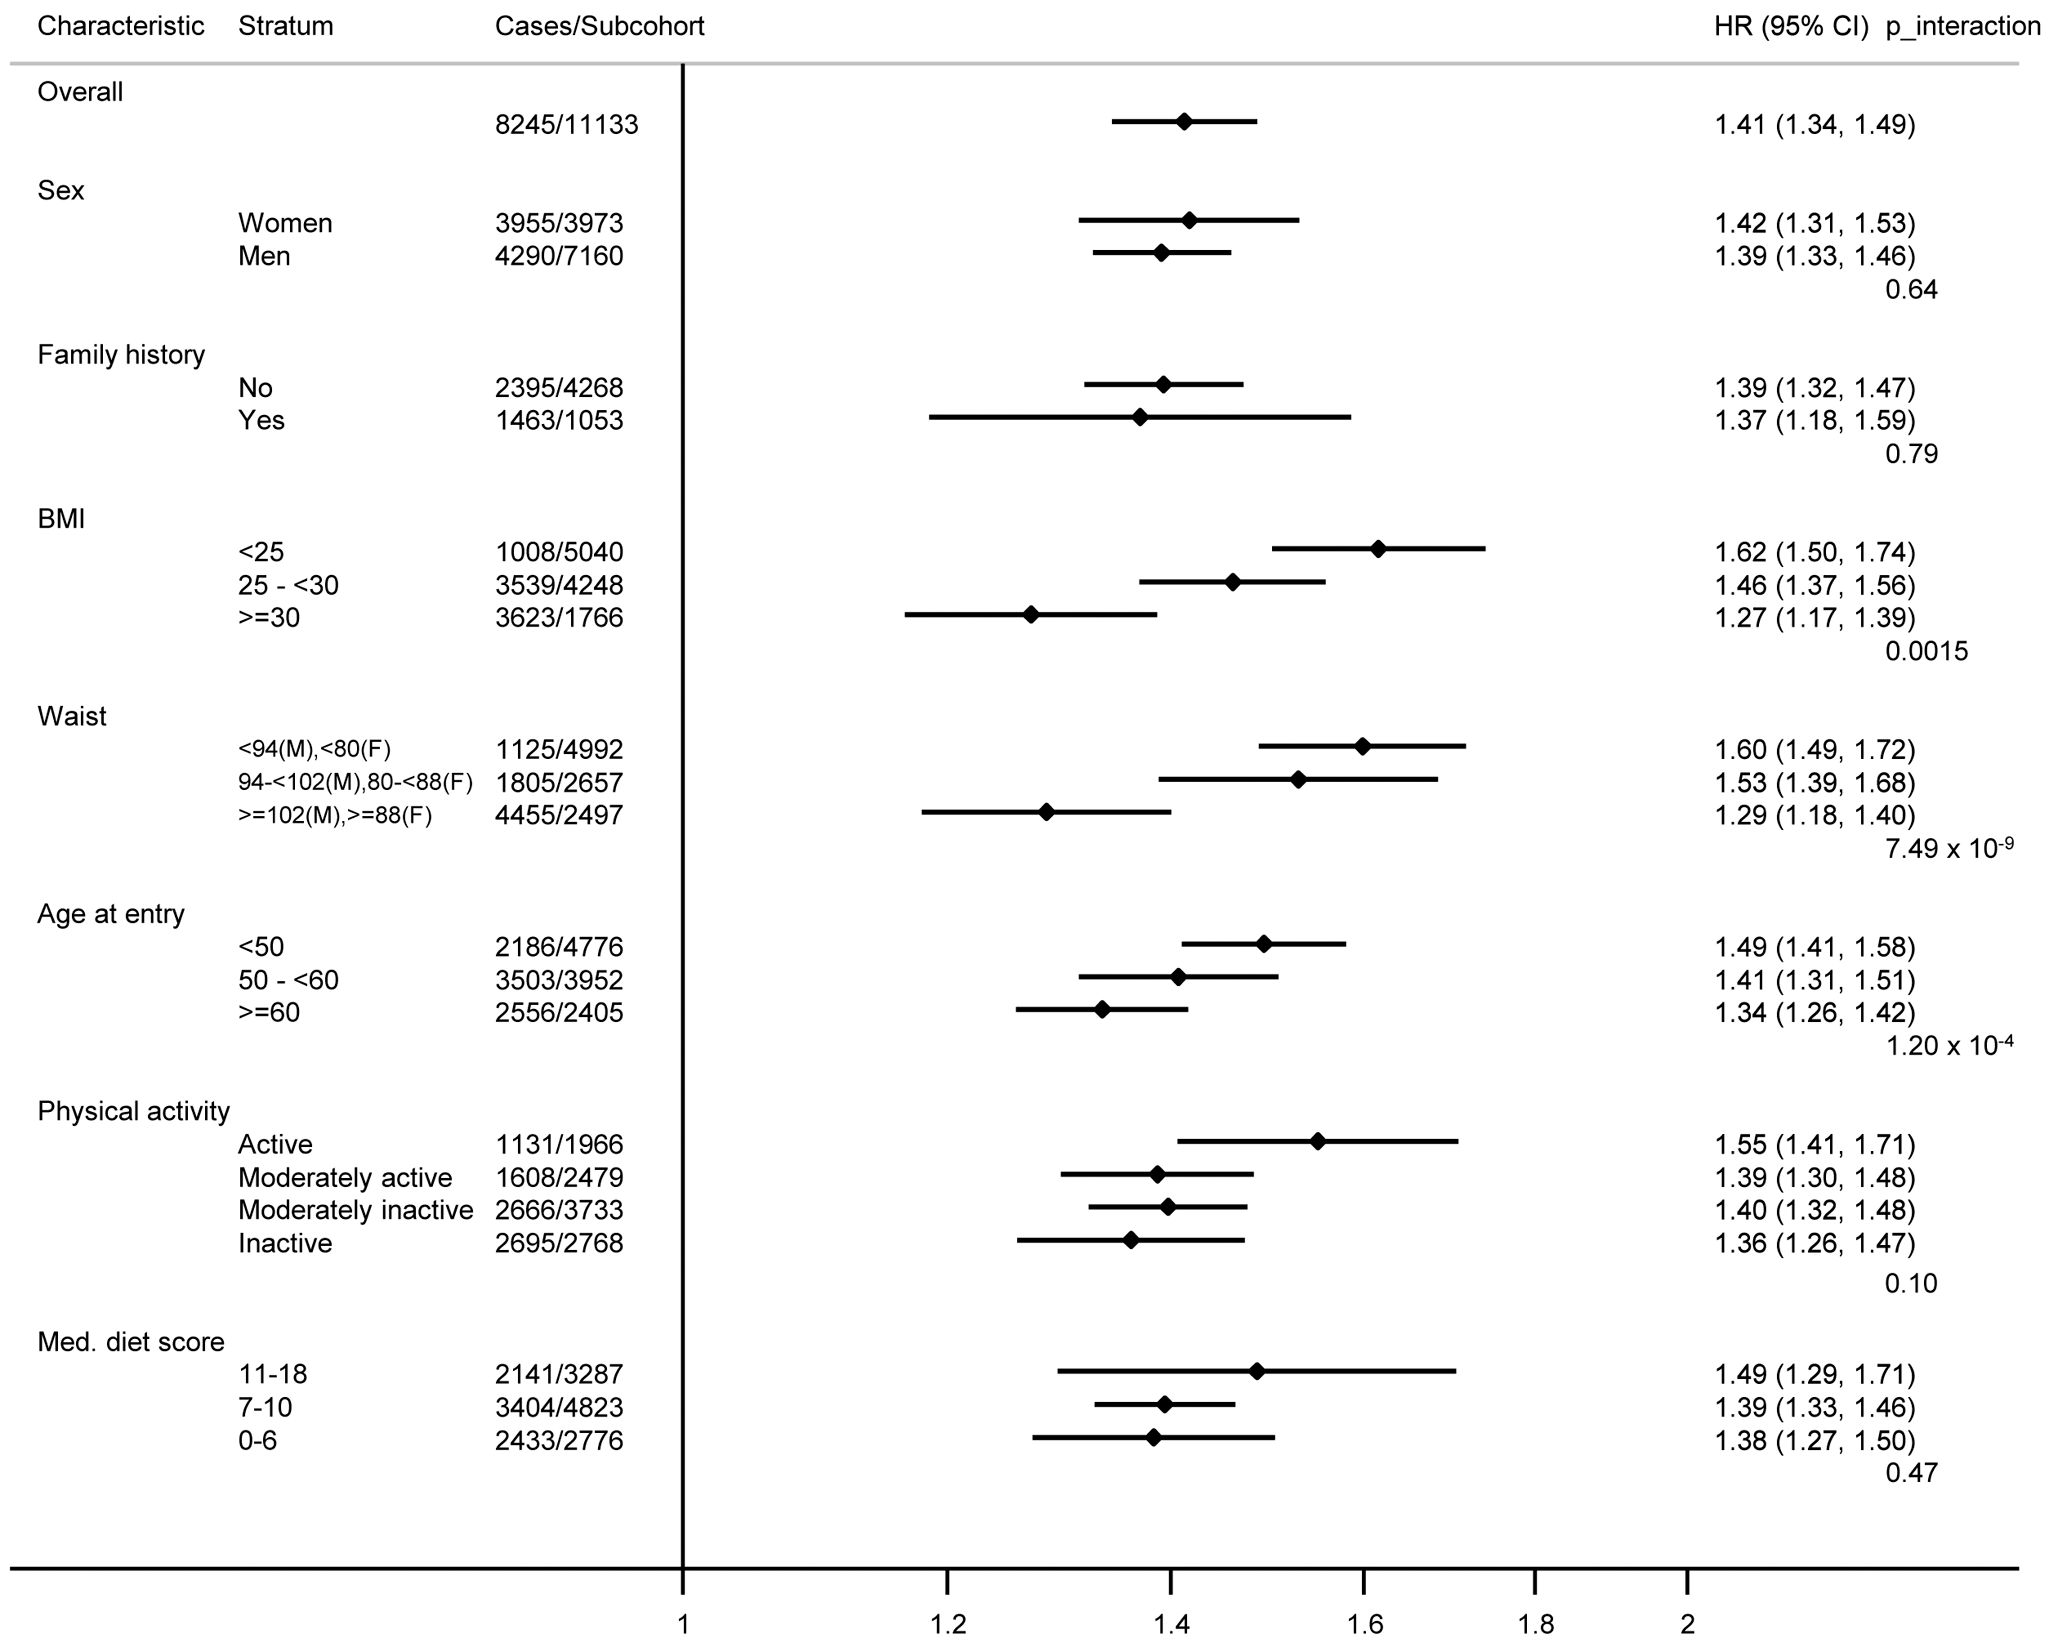 Hazard ratios for type 2 diabetes per standard deviation (4.4 alleles) increase in the imputed, unweighted genetic risk score within strata defined by sex, diabetes family history, body mass index, waist circumference, age, physical activity, and Mediterranean diet score: the InterAct study.